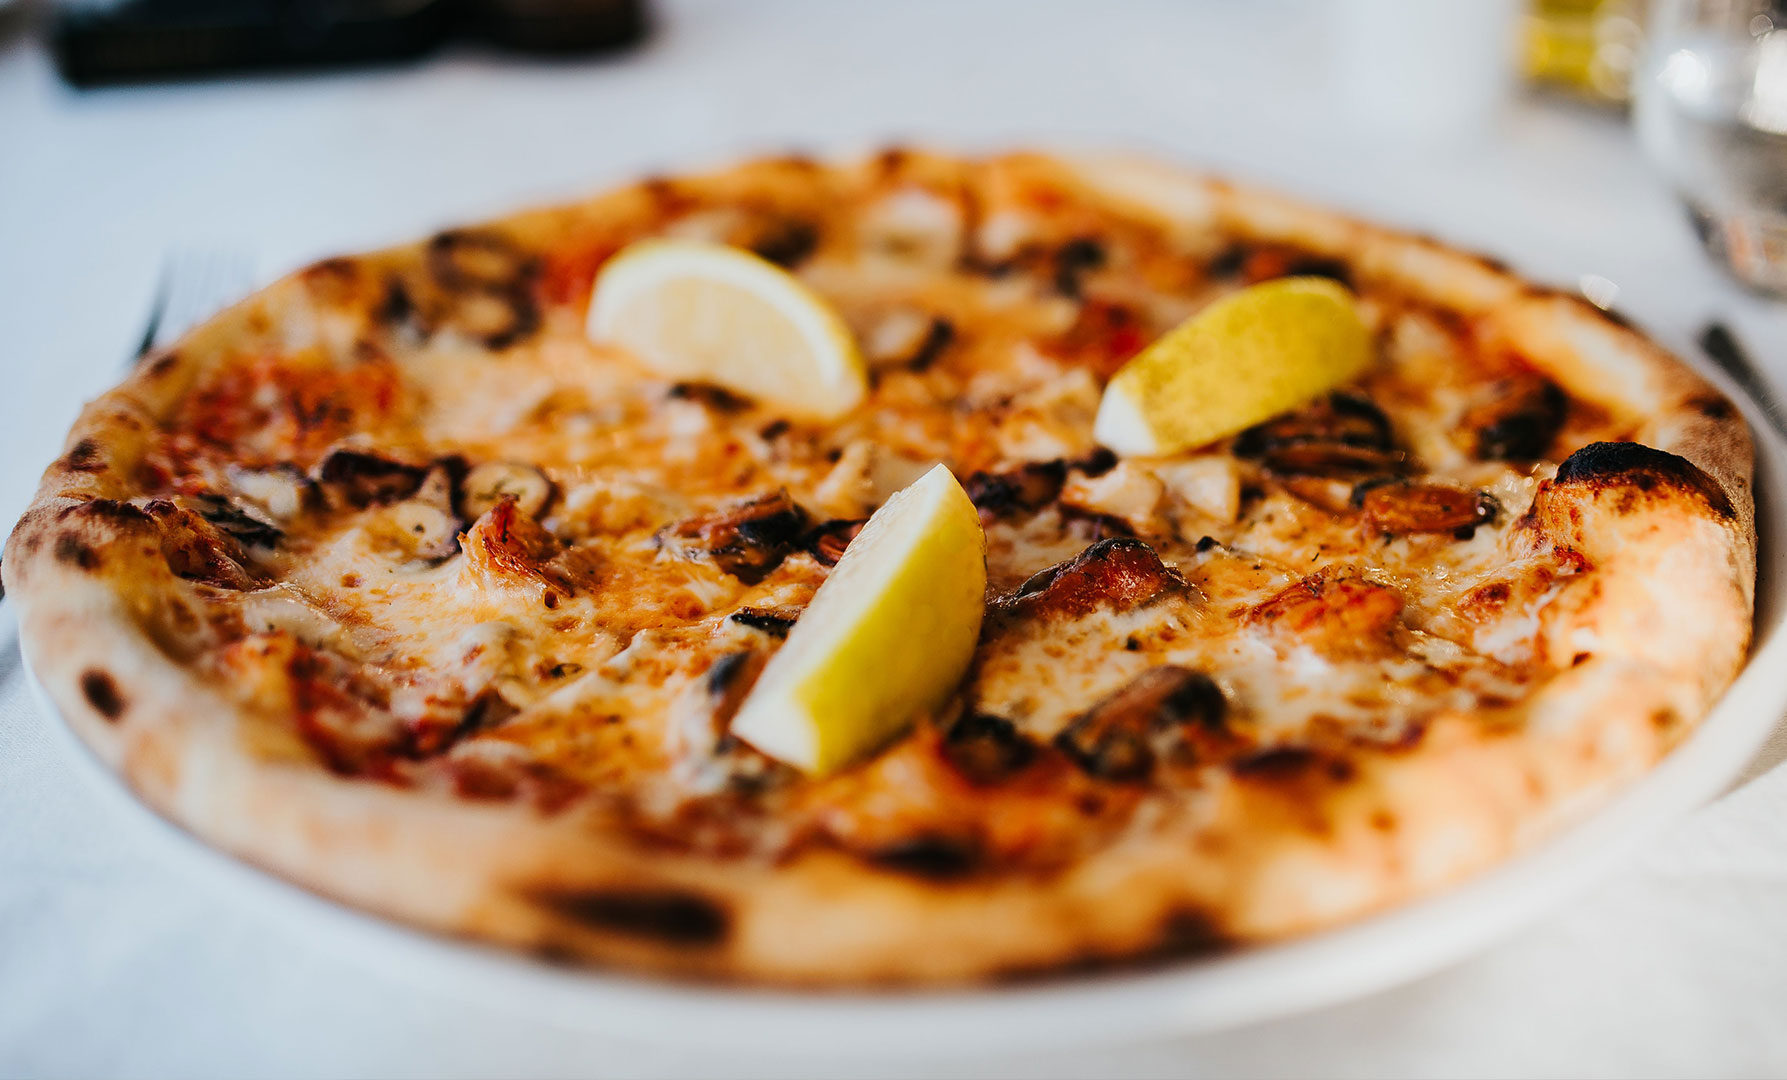 Explore Seattle: The Best Pizza Spots